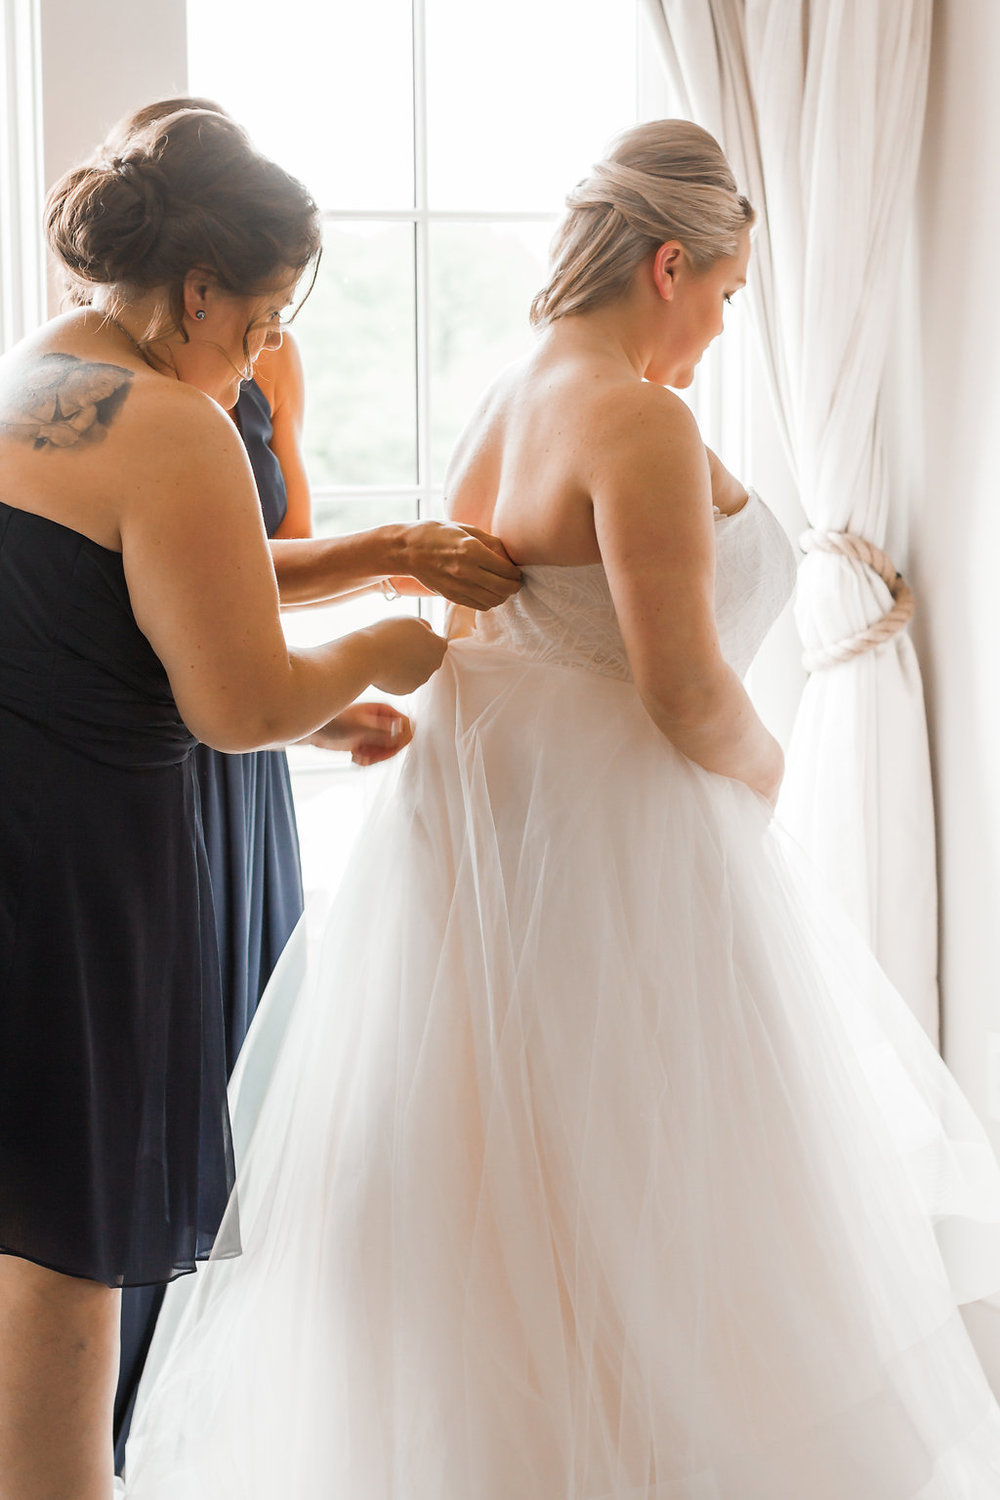 Chesapeake Bay Beach Club Wedding Photography| Andrea Rodway Photography